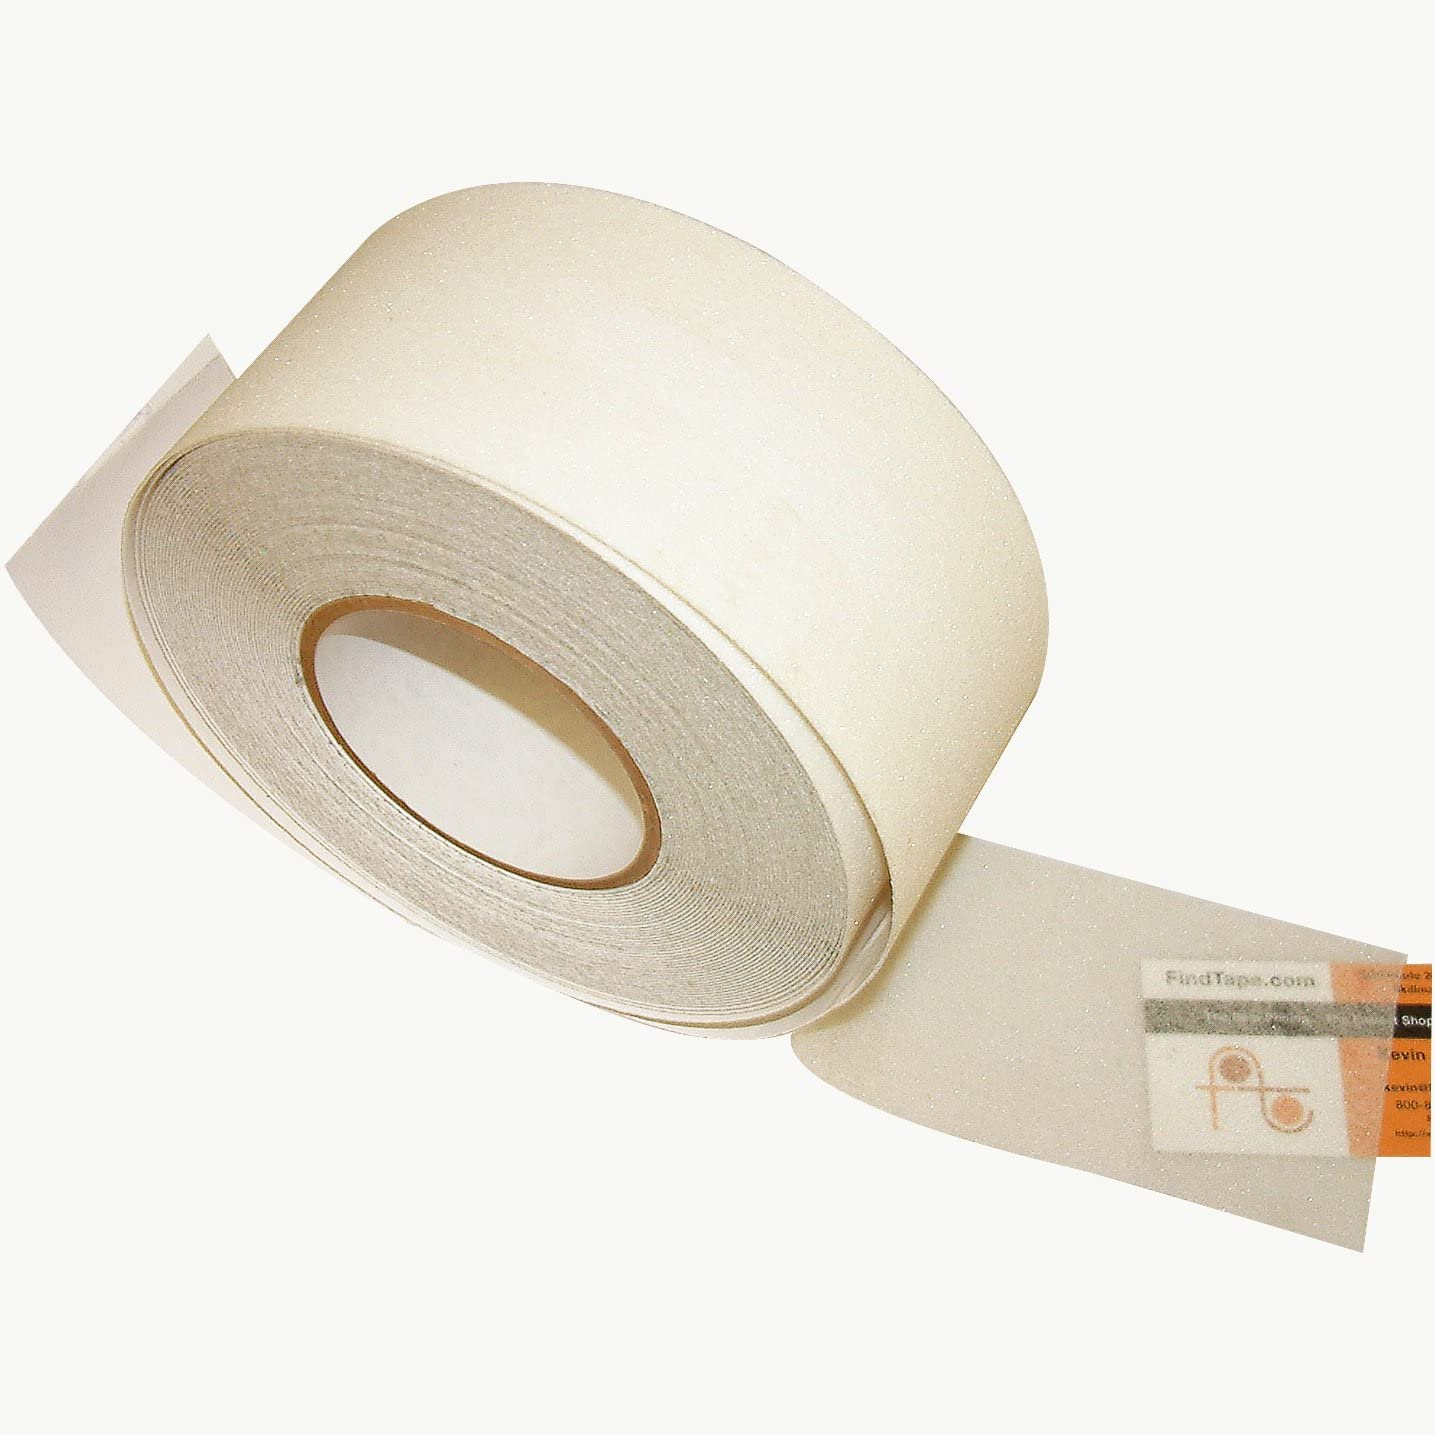 JVCC NS-2A Today's Max 85% OFF only Premium Non-Skid Tape: 3 ft. x 60 Semi-Transpare in.